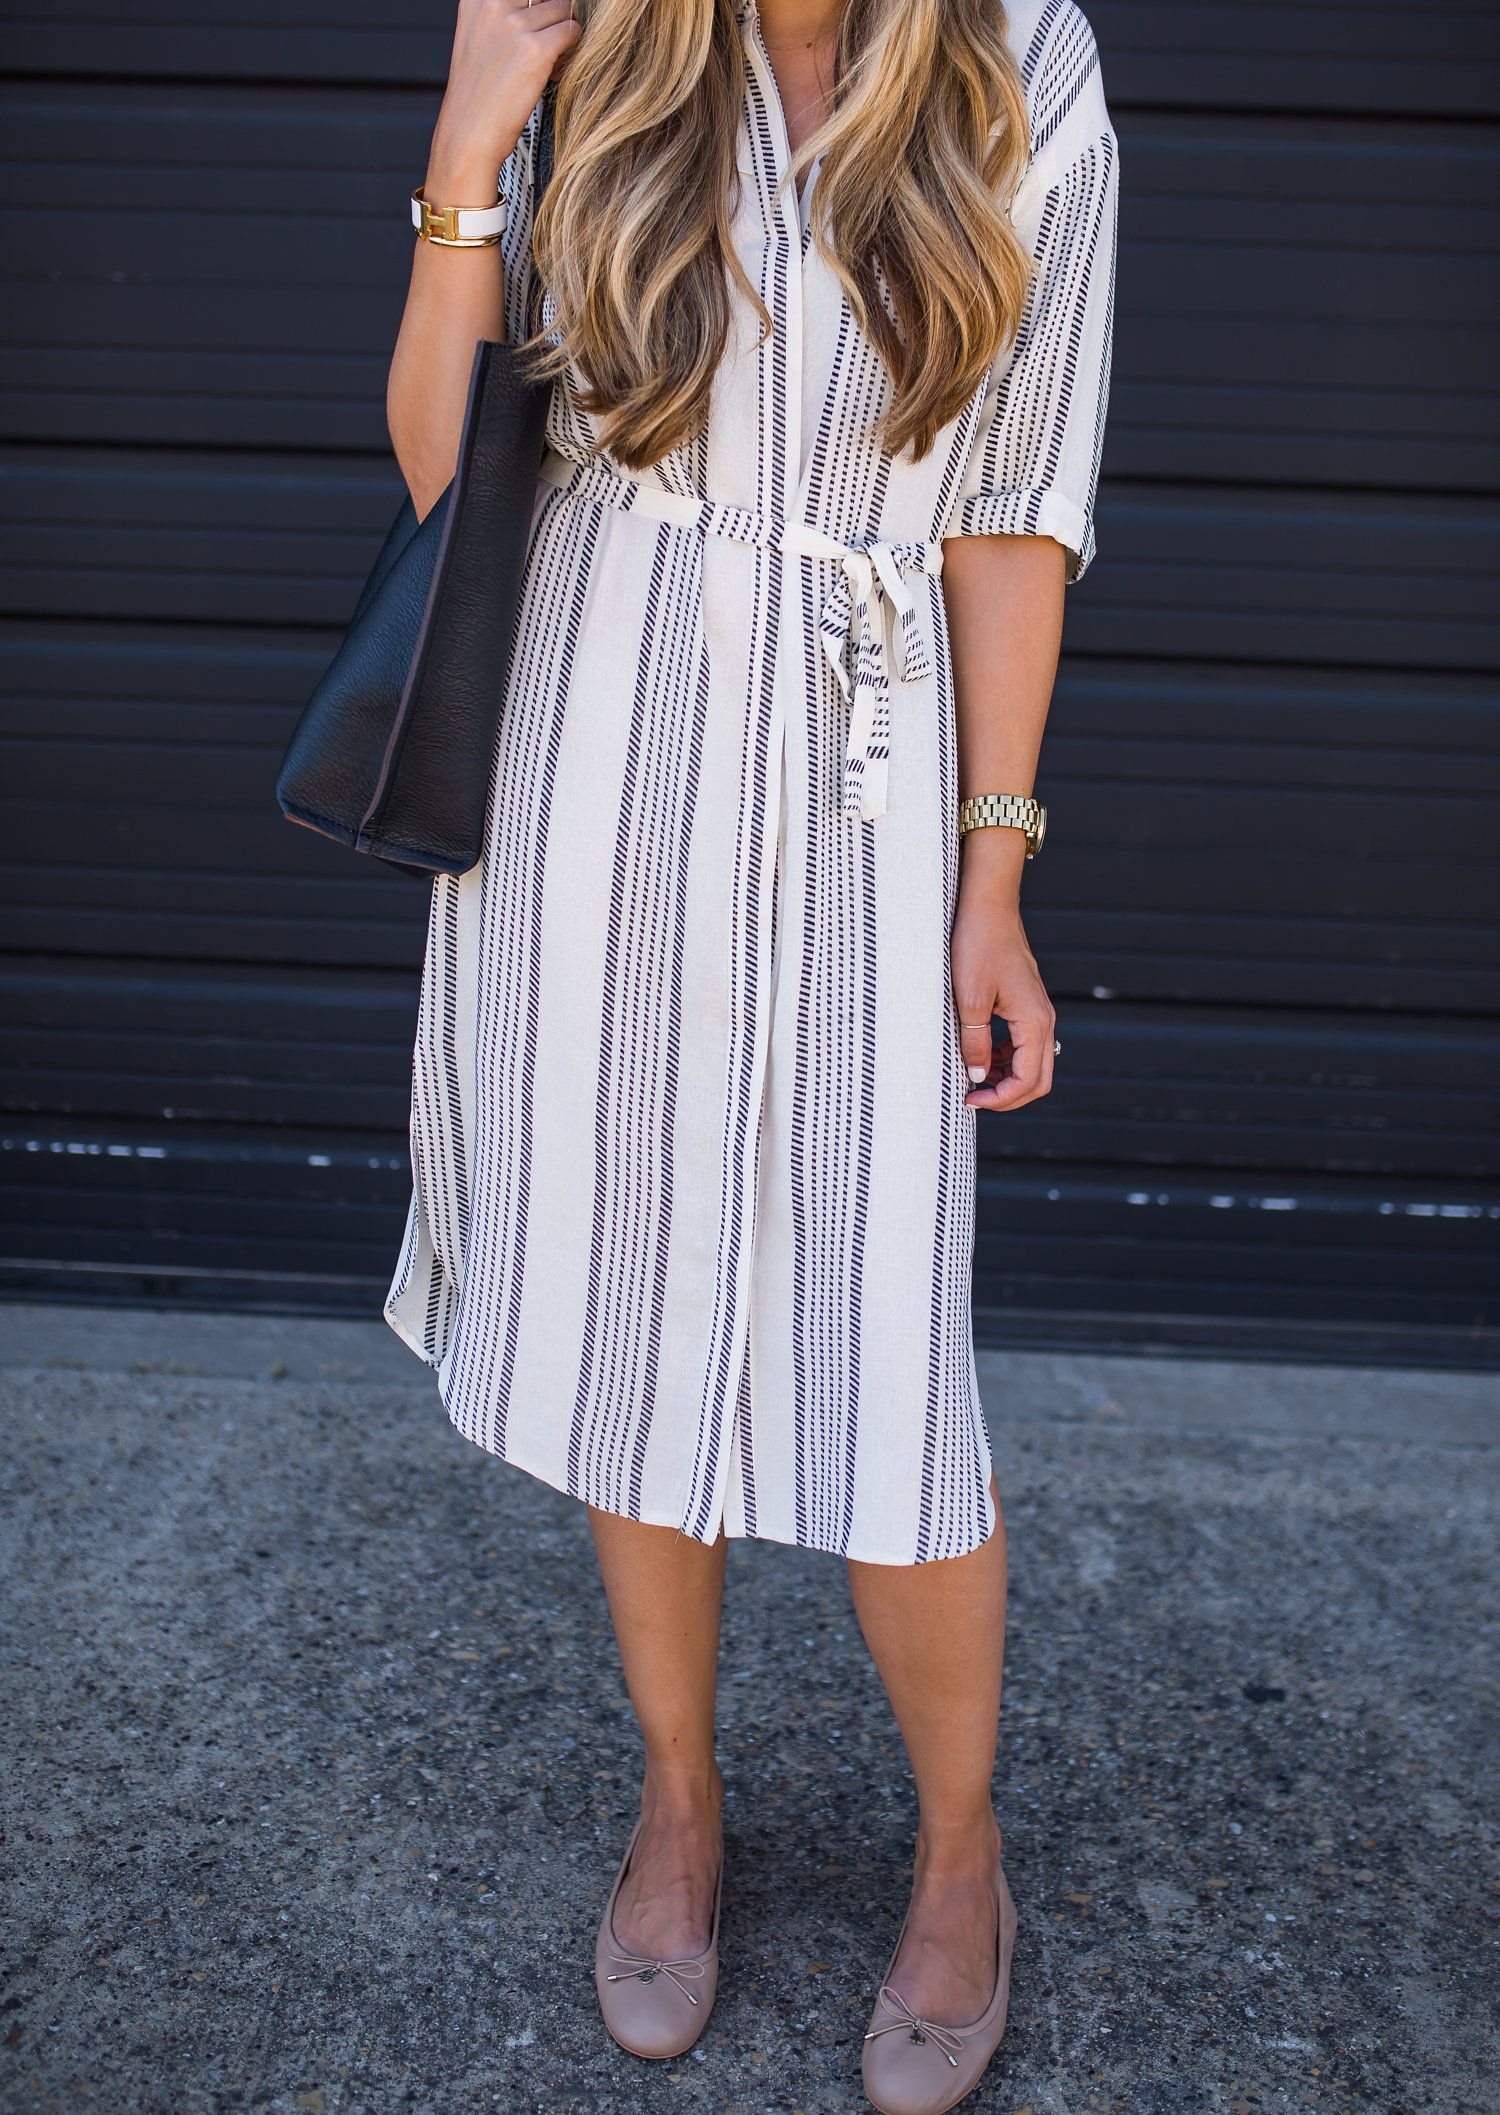 945bd74bc0c Striped dress with flats for work